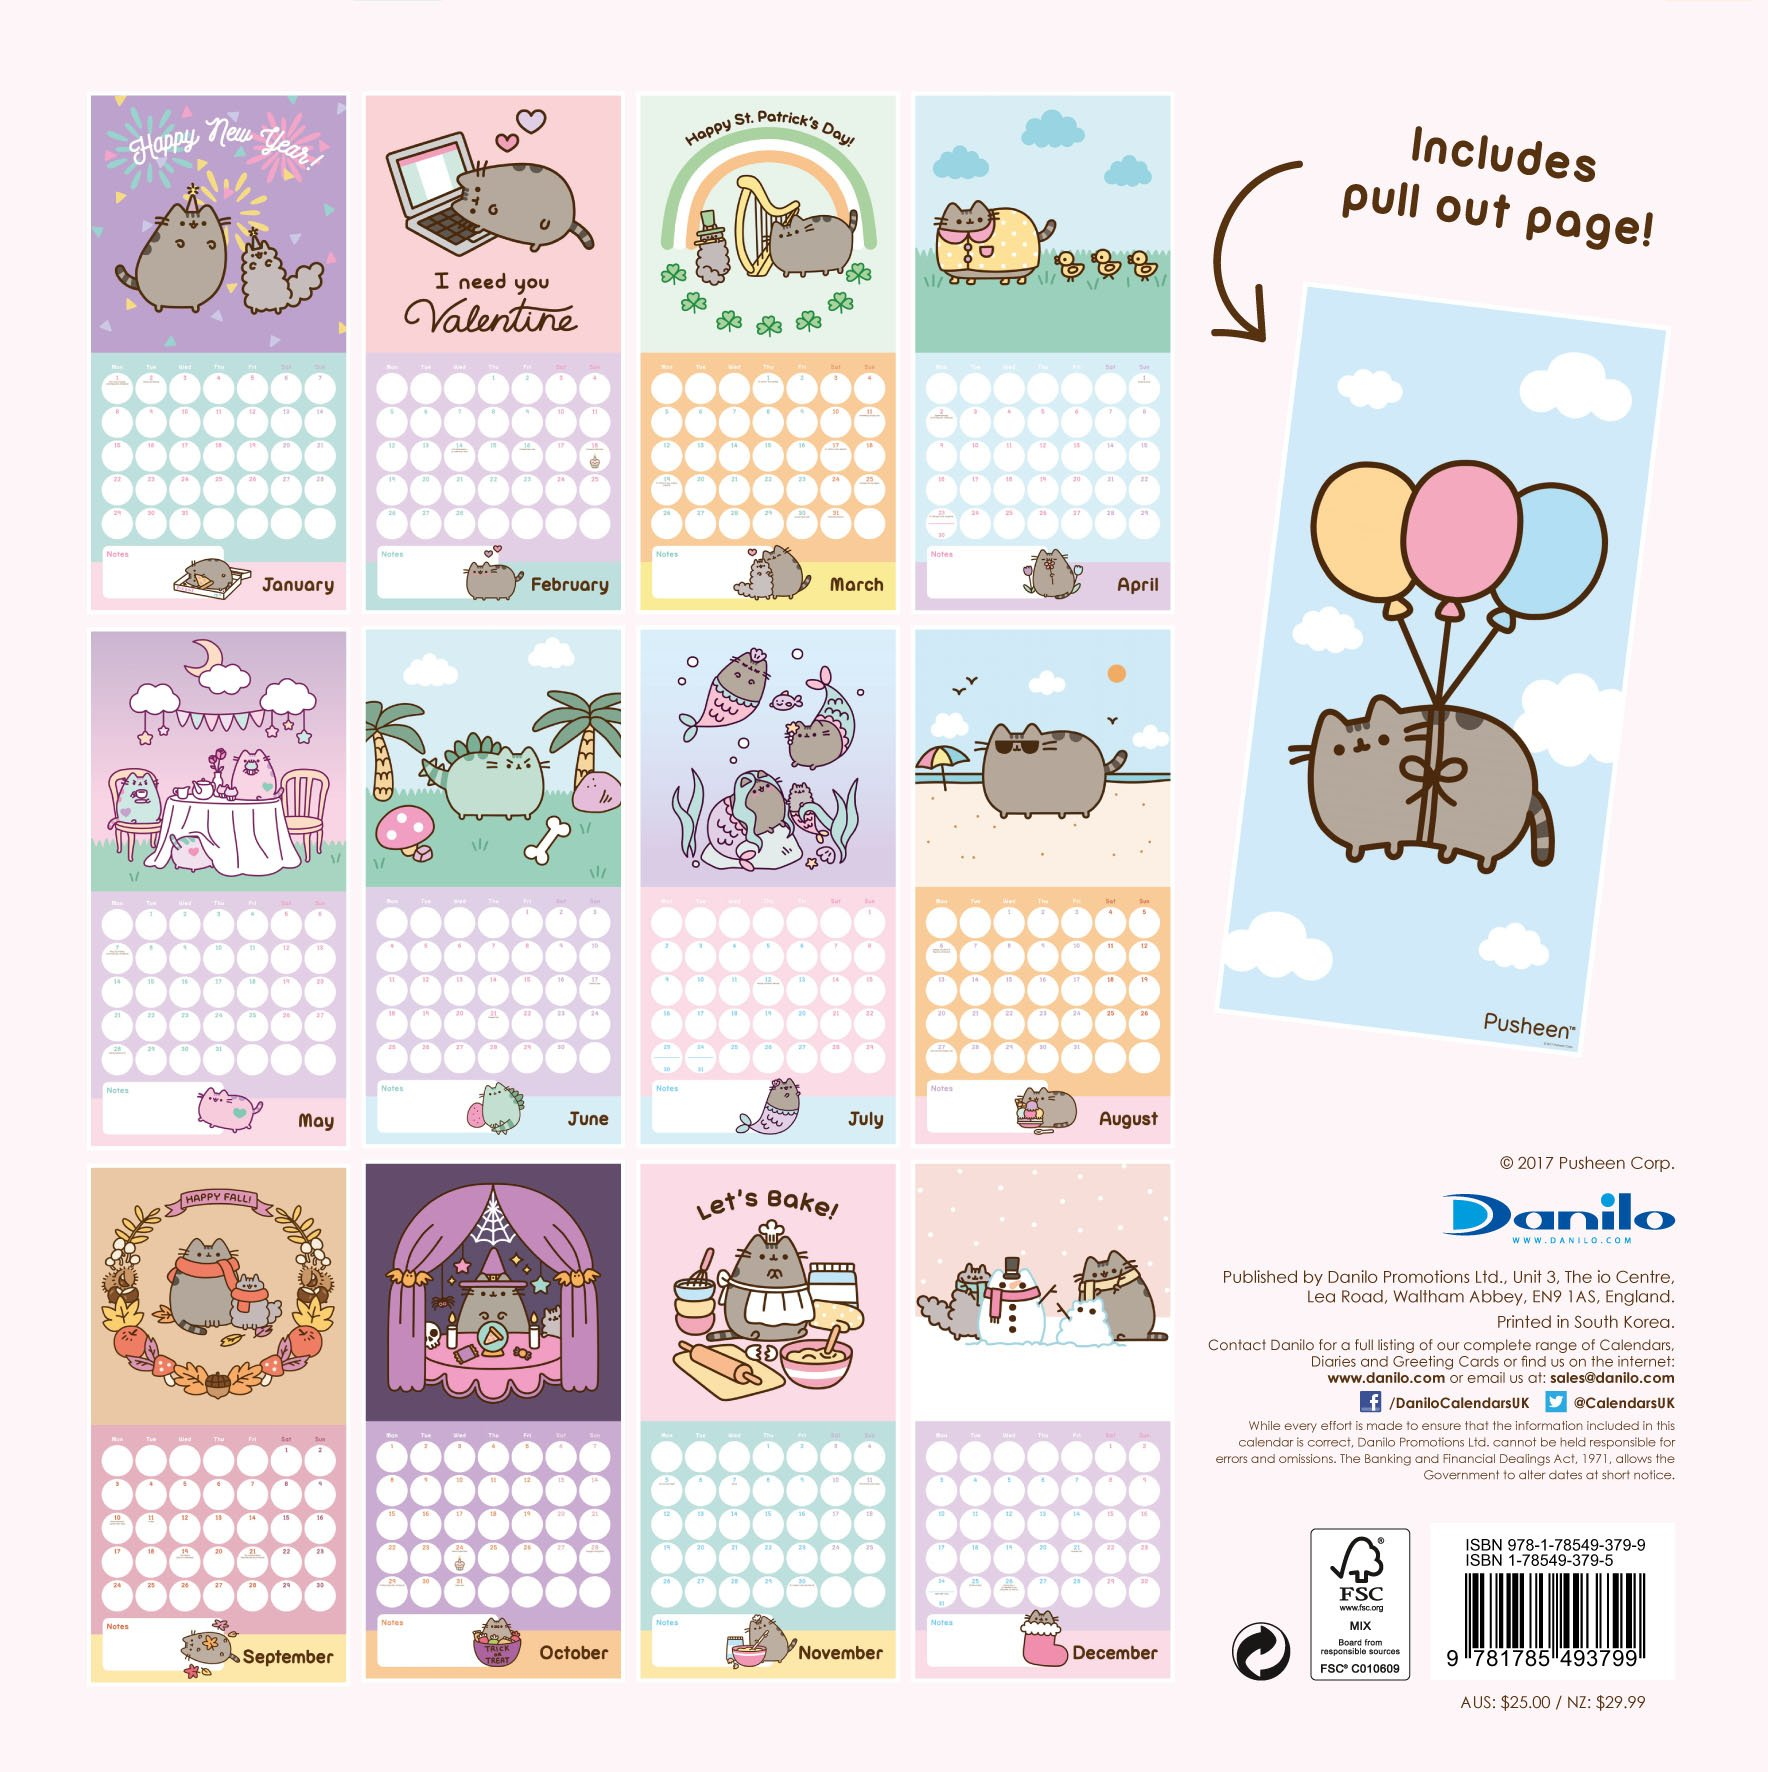 pusheen official 2018 calendar square wall format 9781785493799 amazoncom books